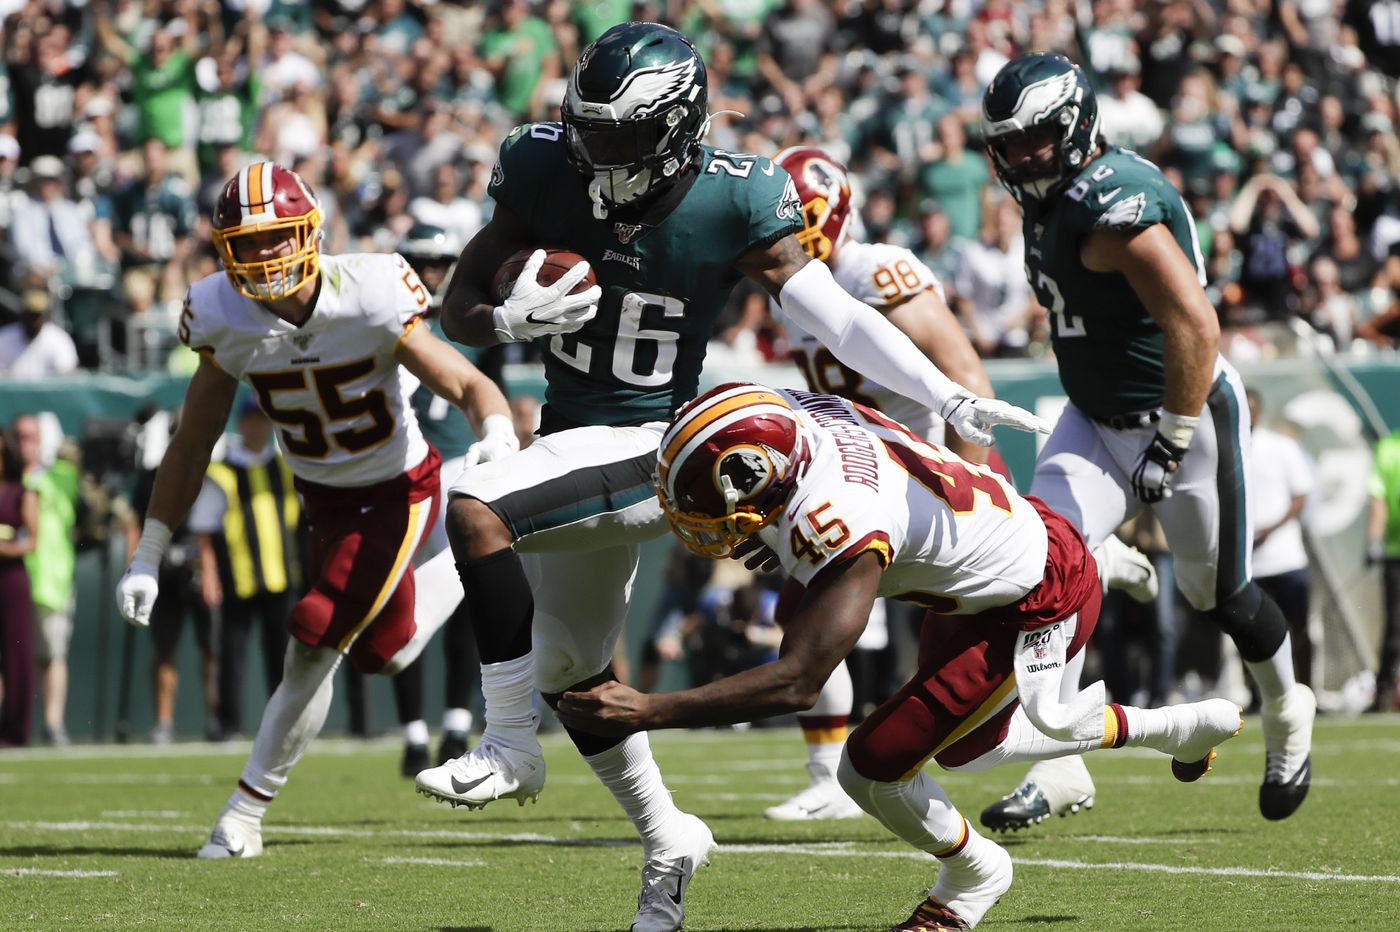 Eagles-Falcons Week 2 scouting report and prediction | Paul Domowitch